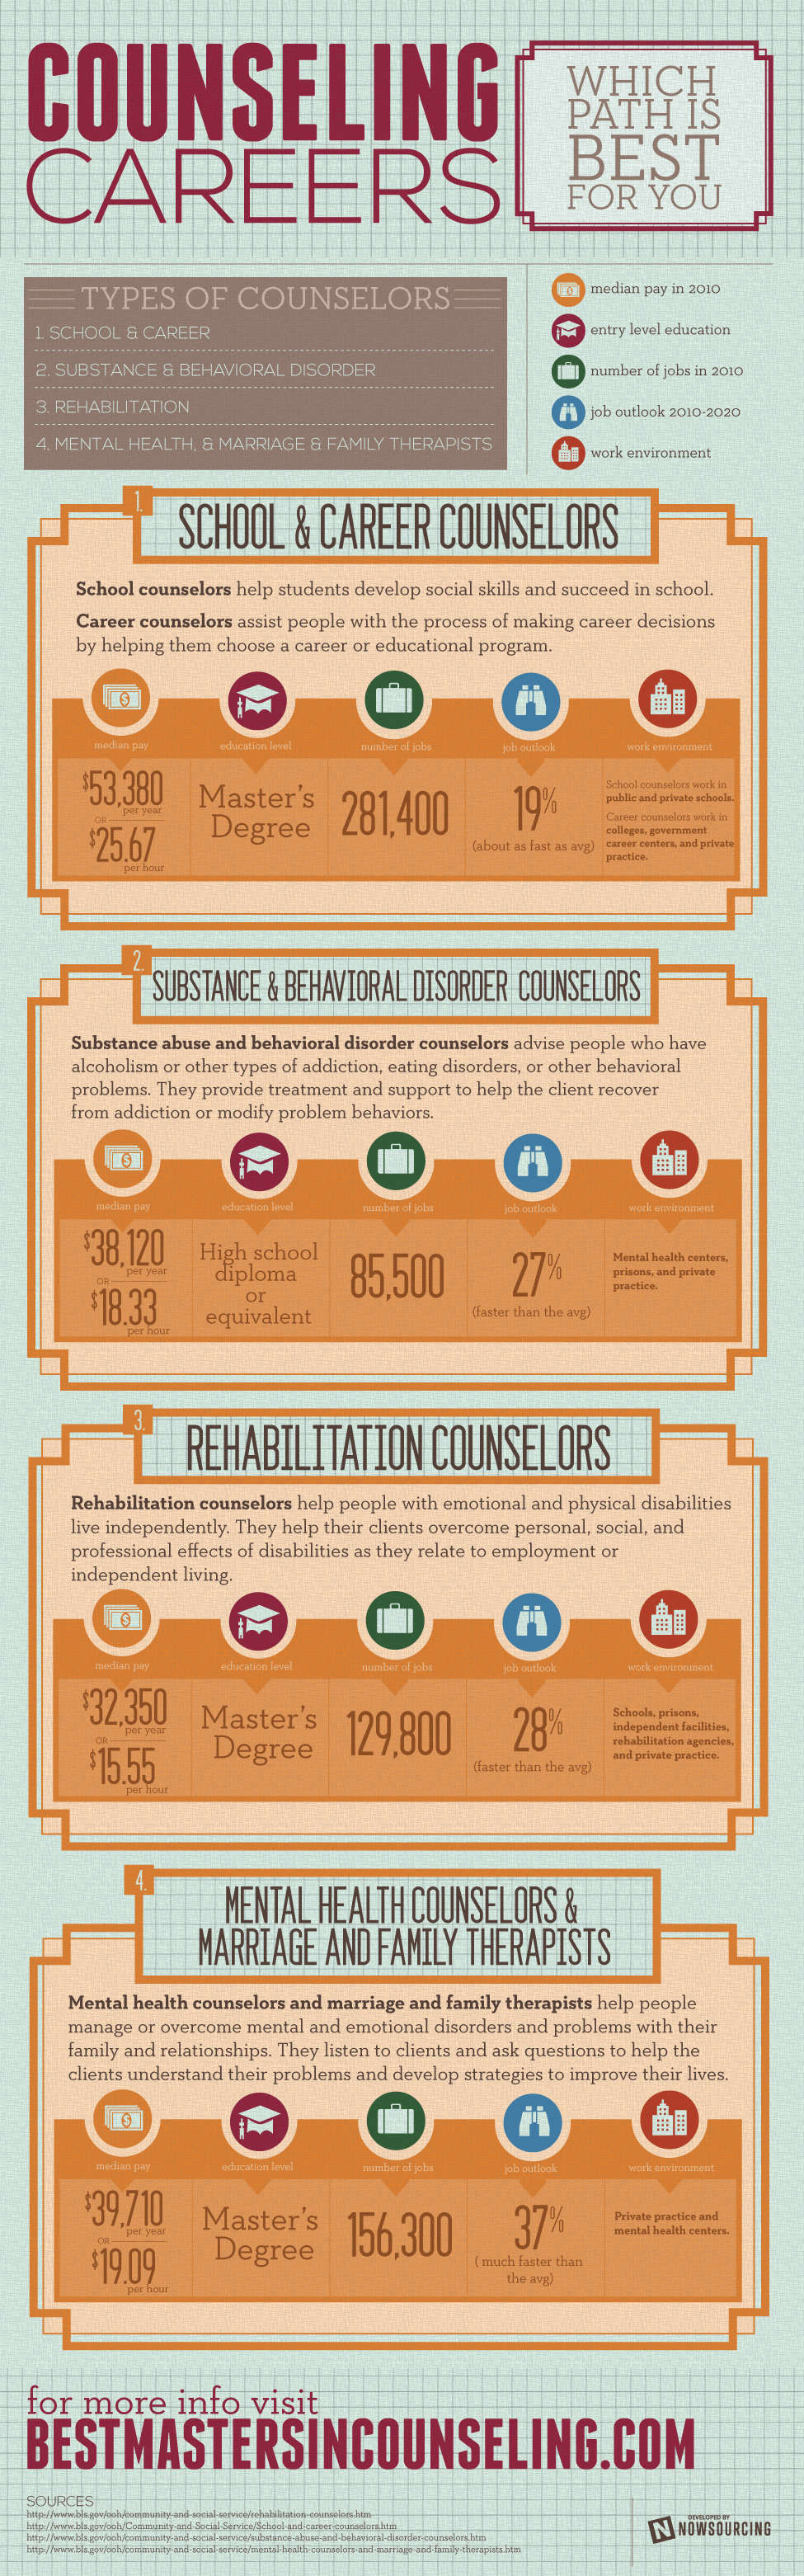 Which Counseling Career Path is Best for You?